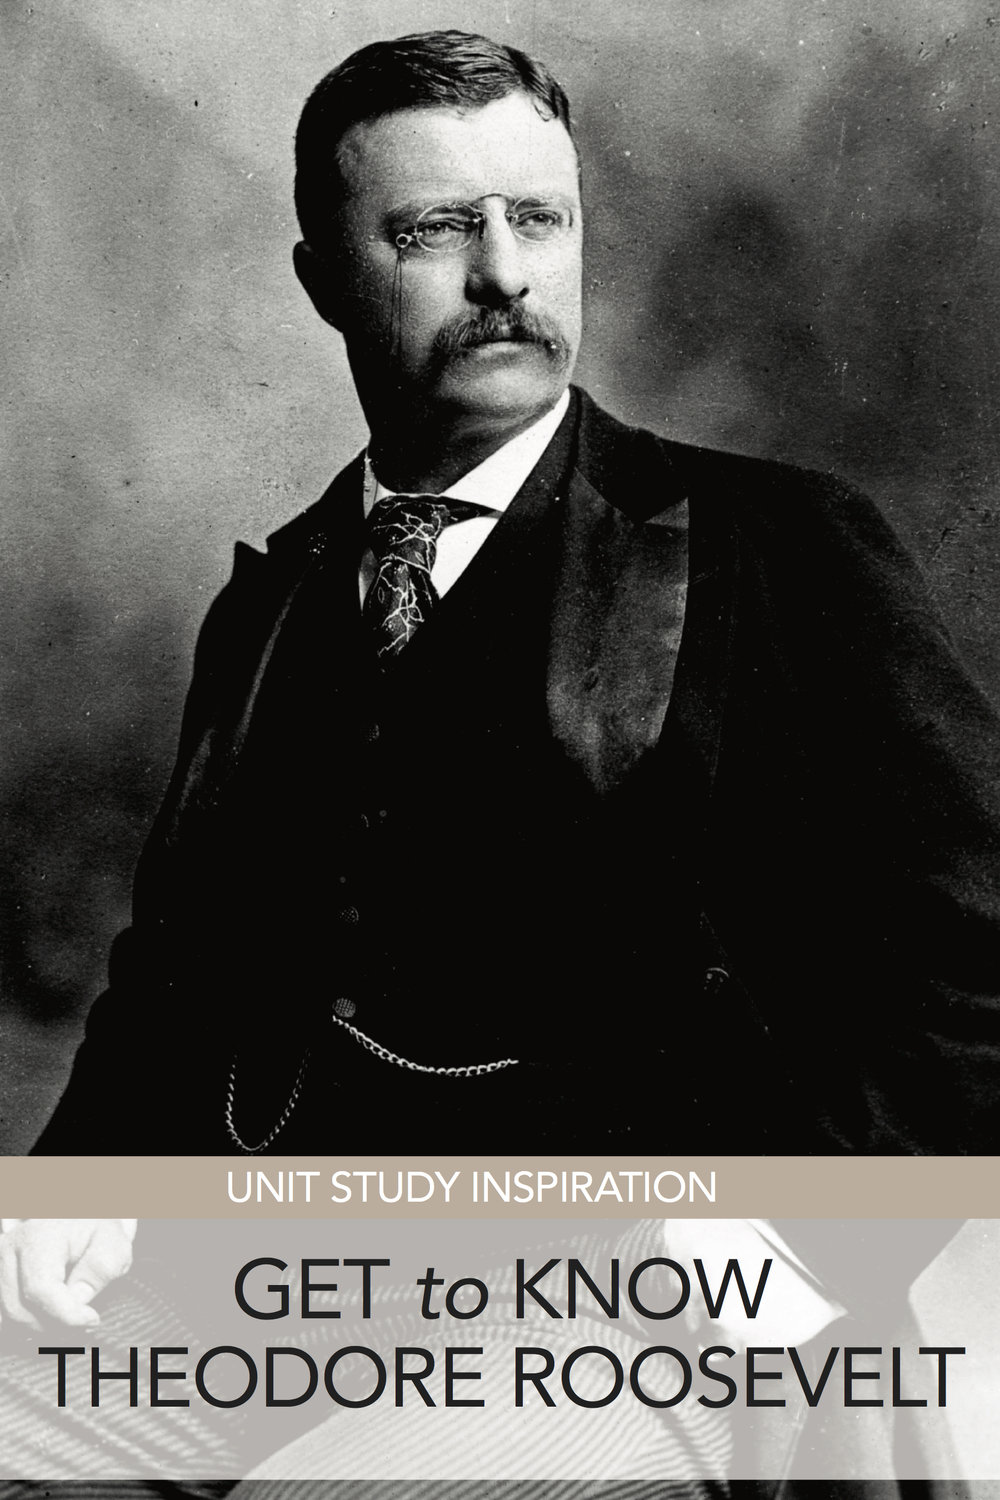 If your kids think studying the U.S. Presidents is kind of boring, a unit study on Teddy Roosevelt should pretty thoroughly change their minds. #homeschool